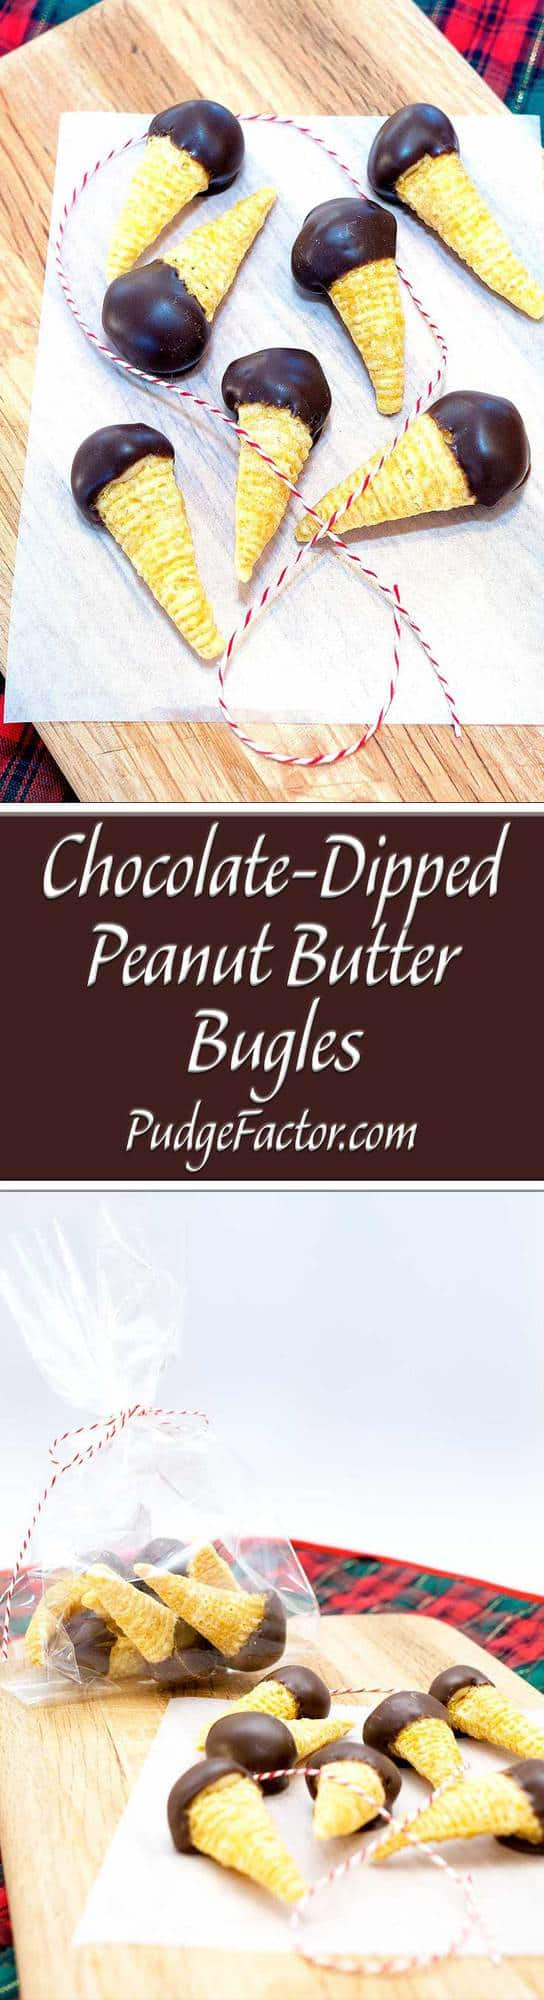 Every year about this time, I make peanut butter balls, and reserve some of the peanut butter mixture to make these delectable little morsels.